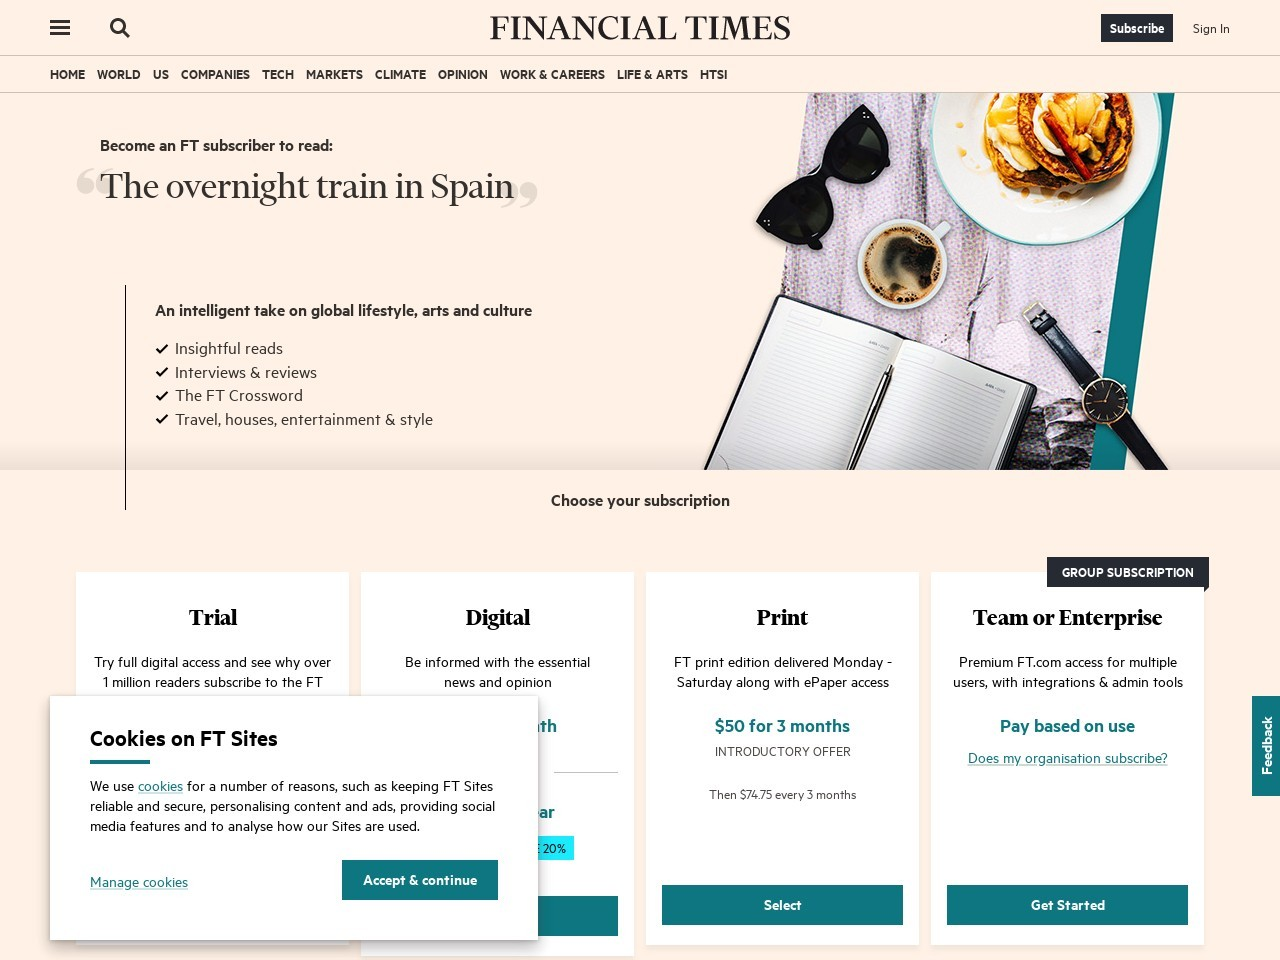 The overnight train in Spain